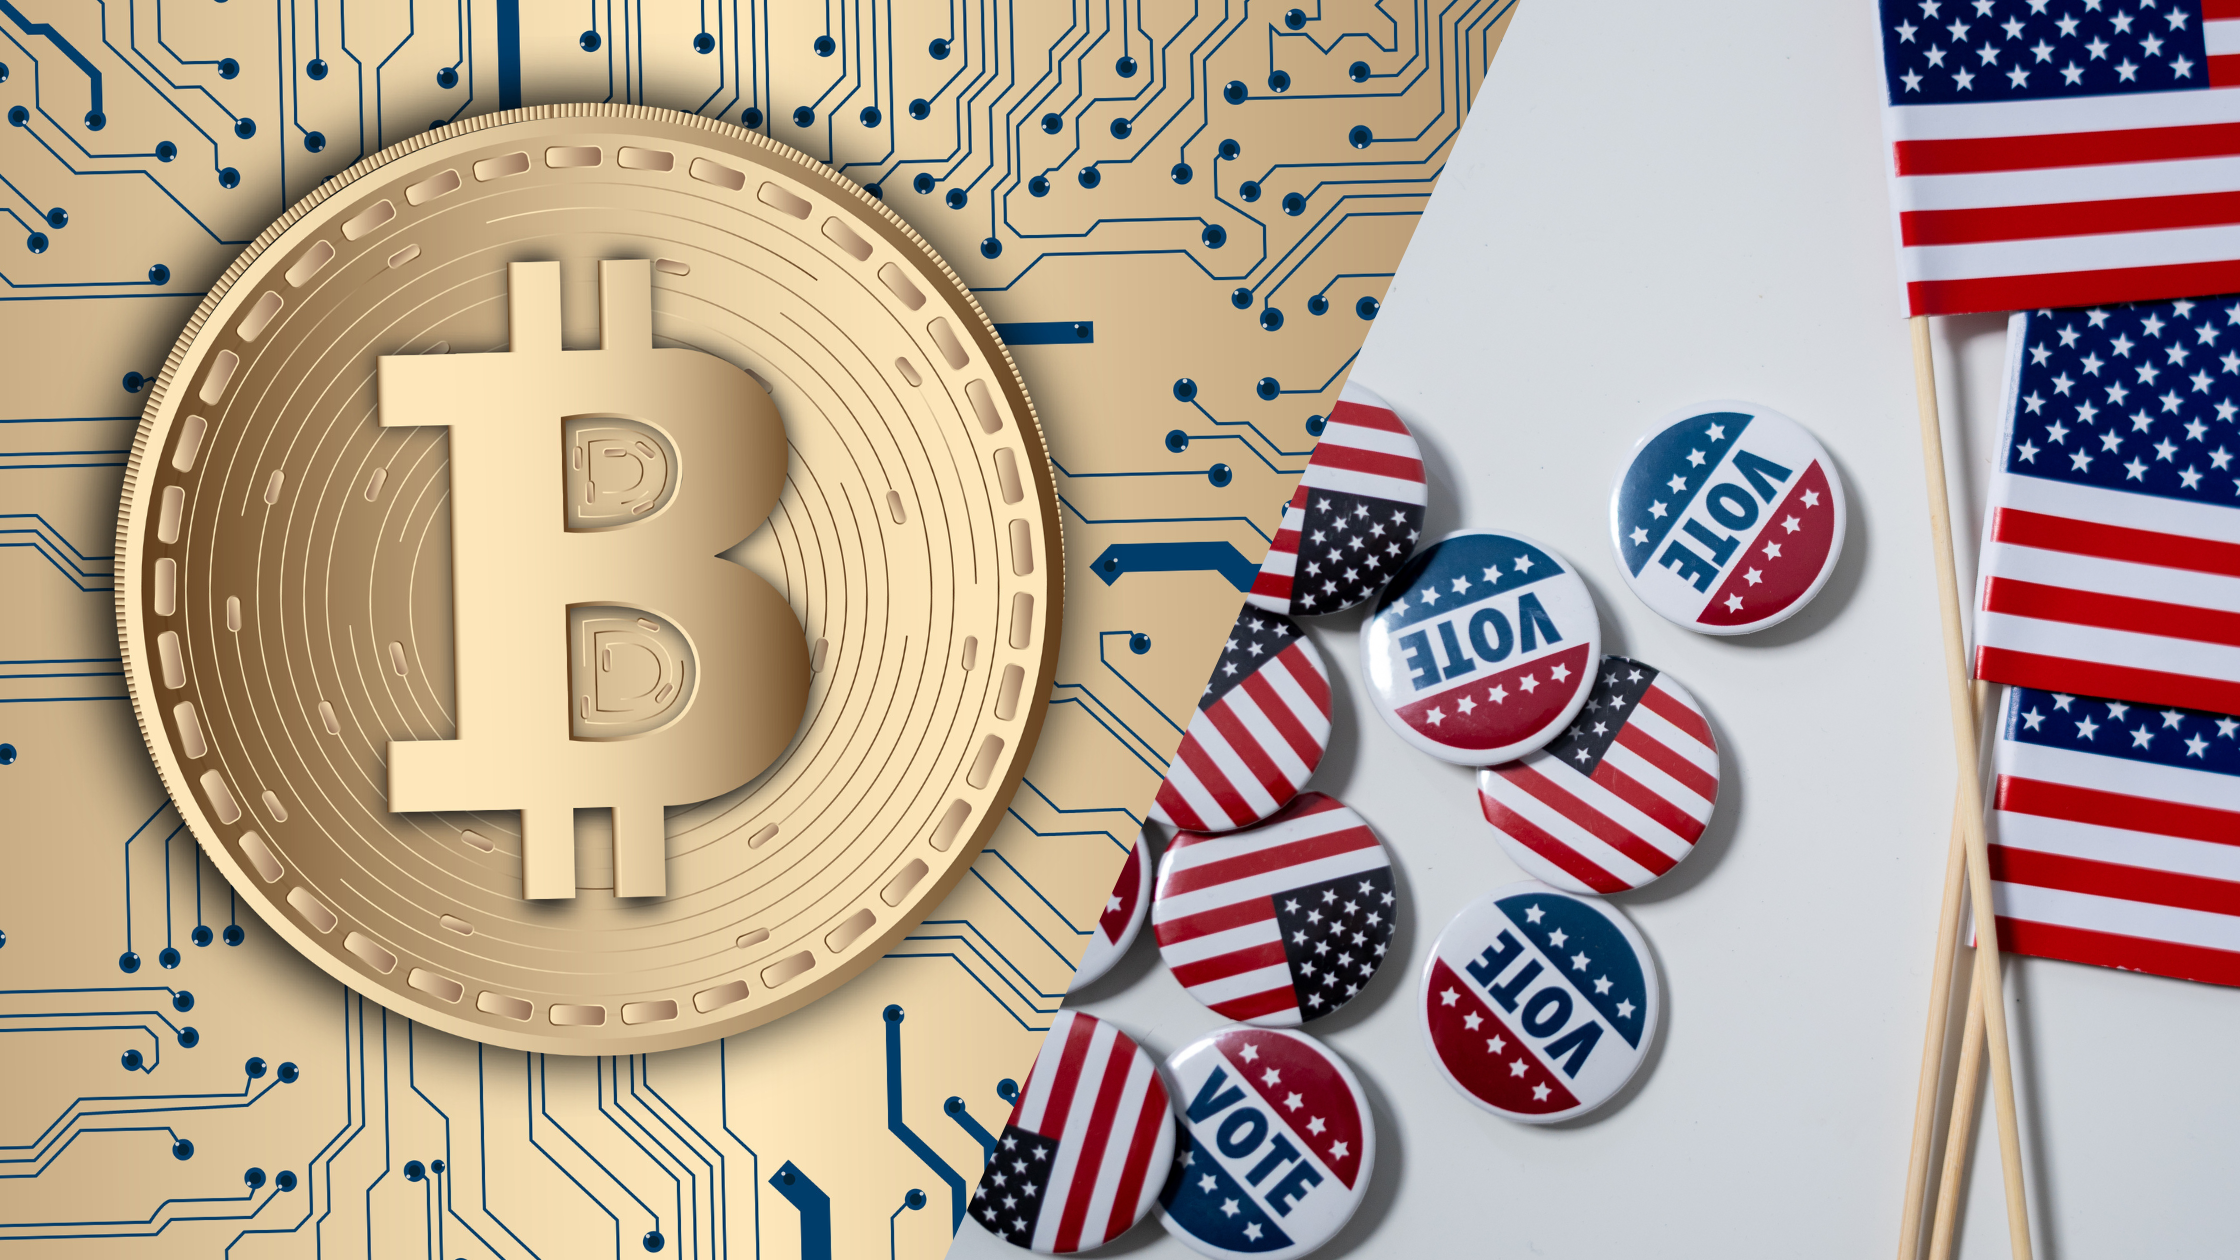 POST ELECTION - Bitcoin Looking to Break $16,500 in November?